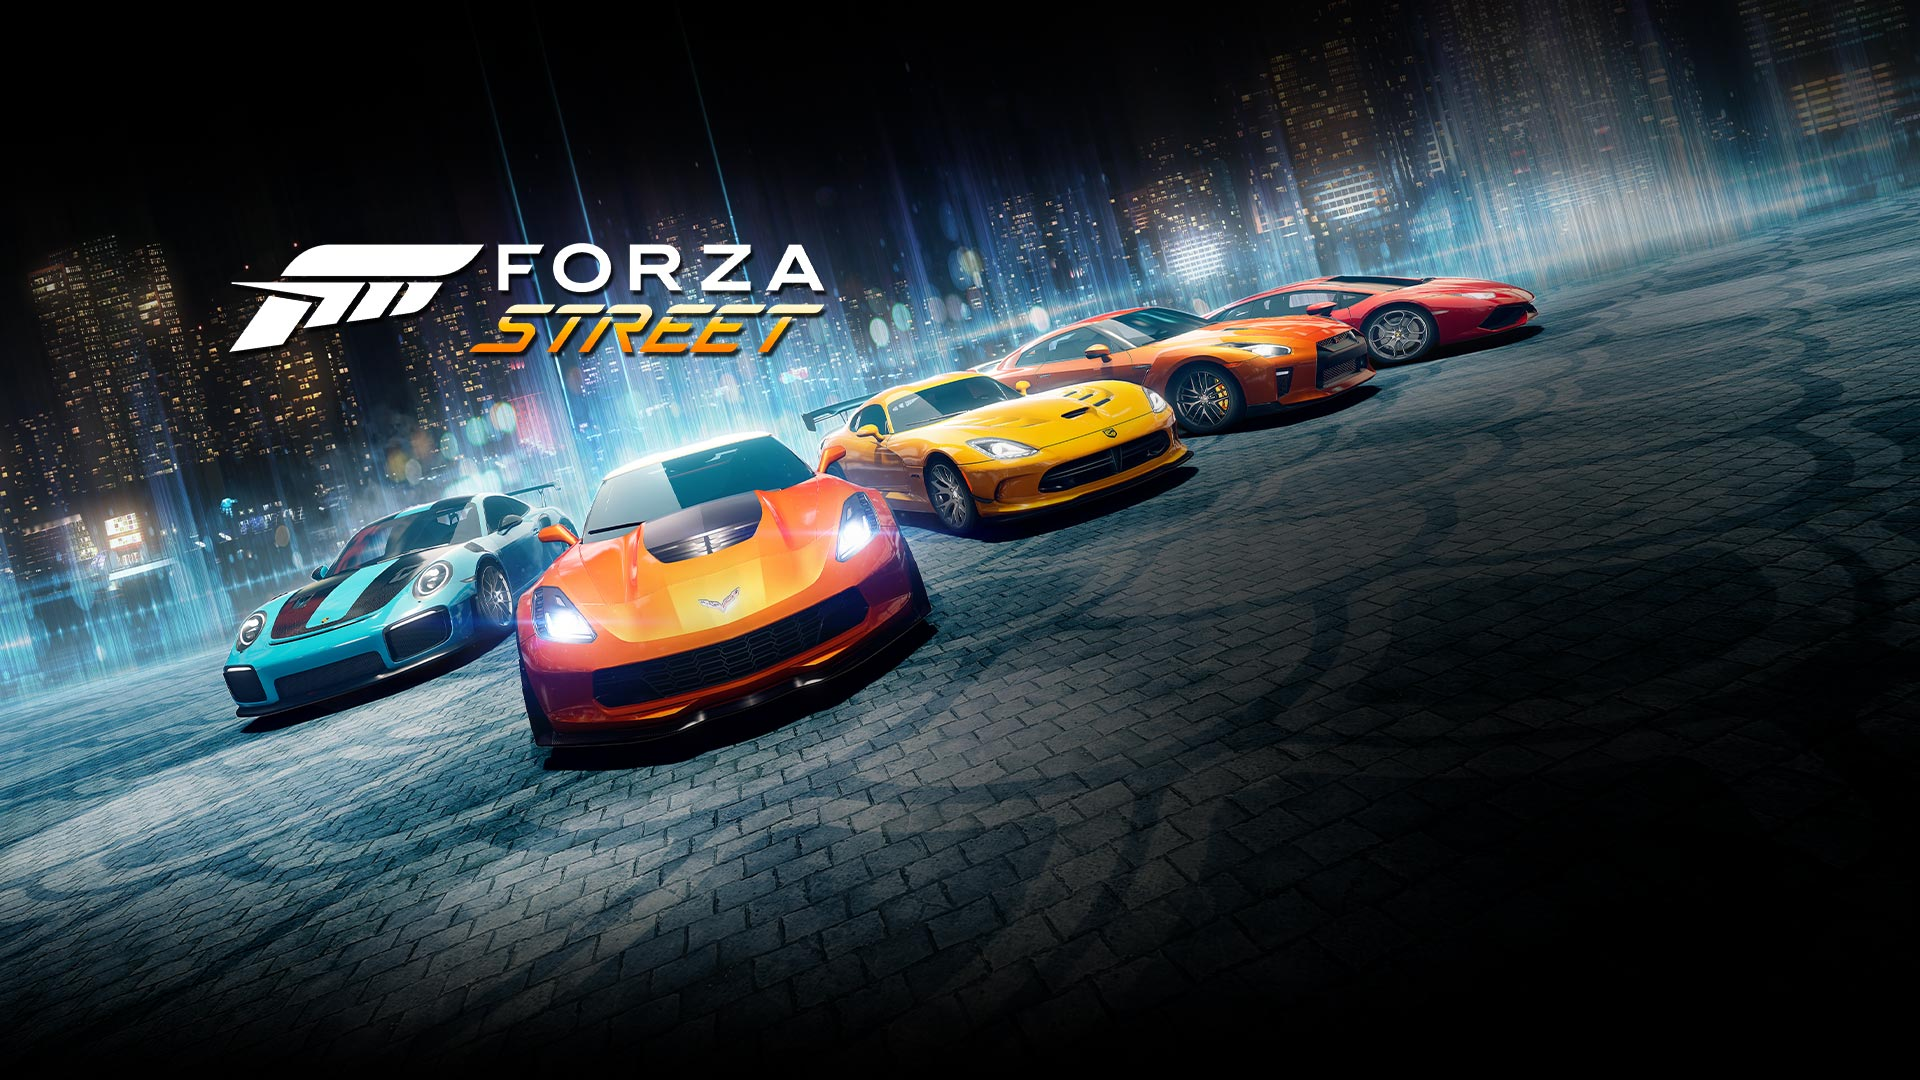 Forza Street, lineup of legendary cars in the background